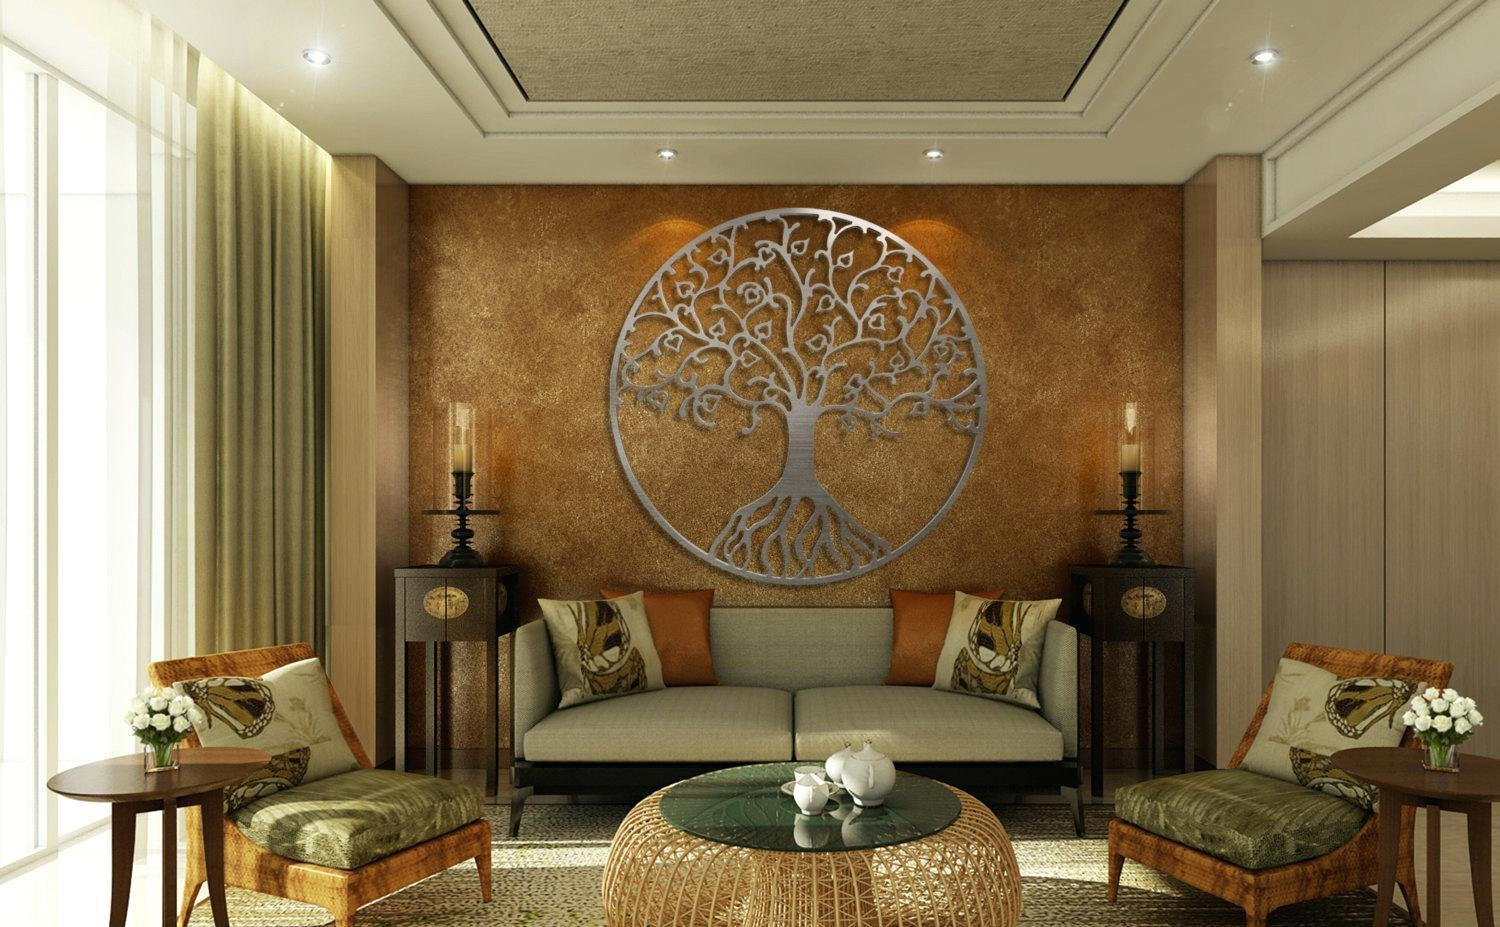 Wall Ideas : Sculpture Wall Decor Metal Sculpture Wall Art Trees Within Large Metal Wall Art Sculptures (Image 19 of 20)